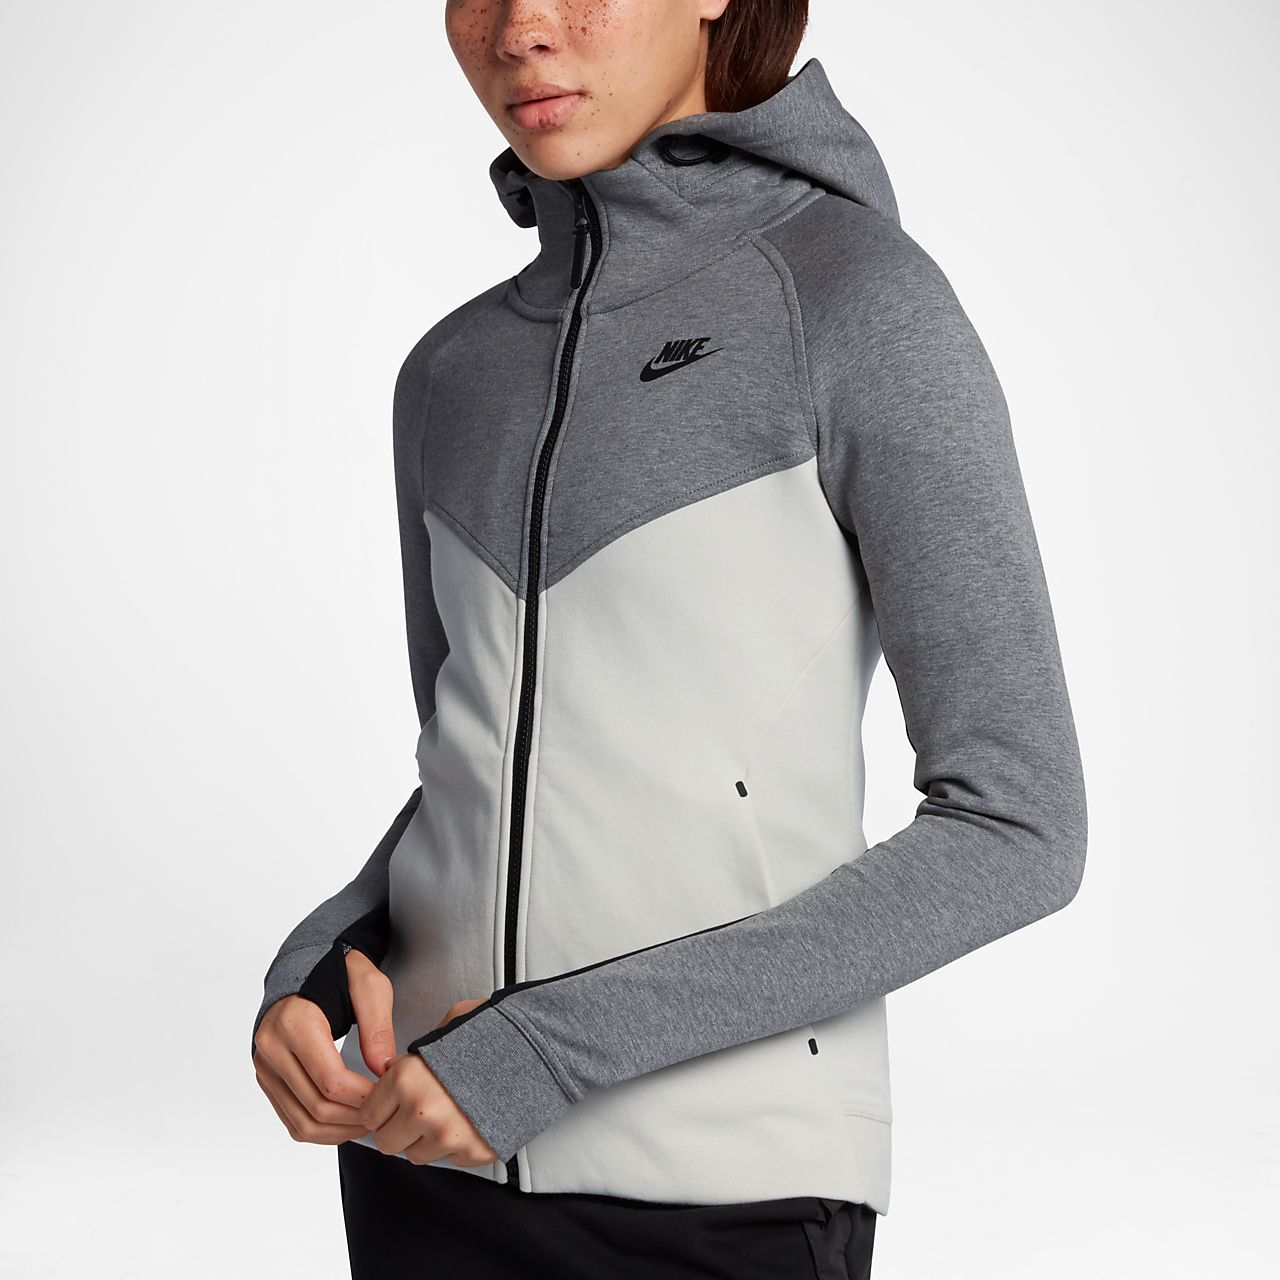 0acfc3c9ff0b Nike Sportswear Tech Fleece Windrunner Women s Full-Zip Hoodie ...